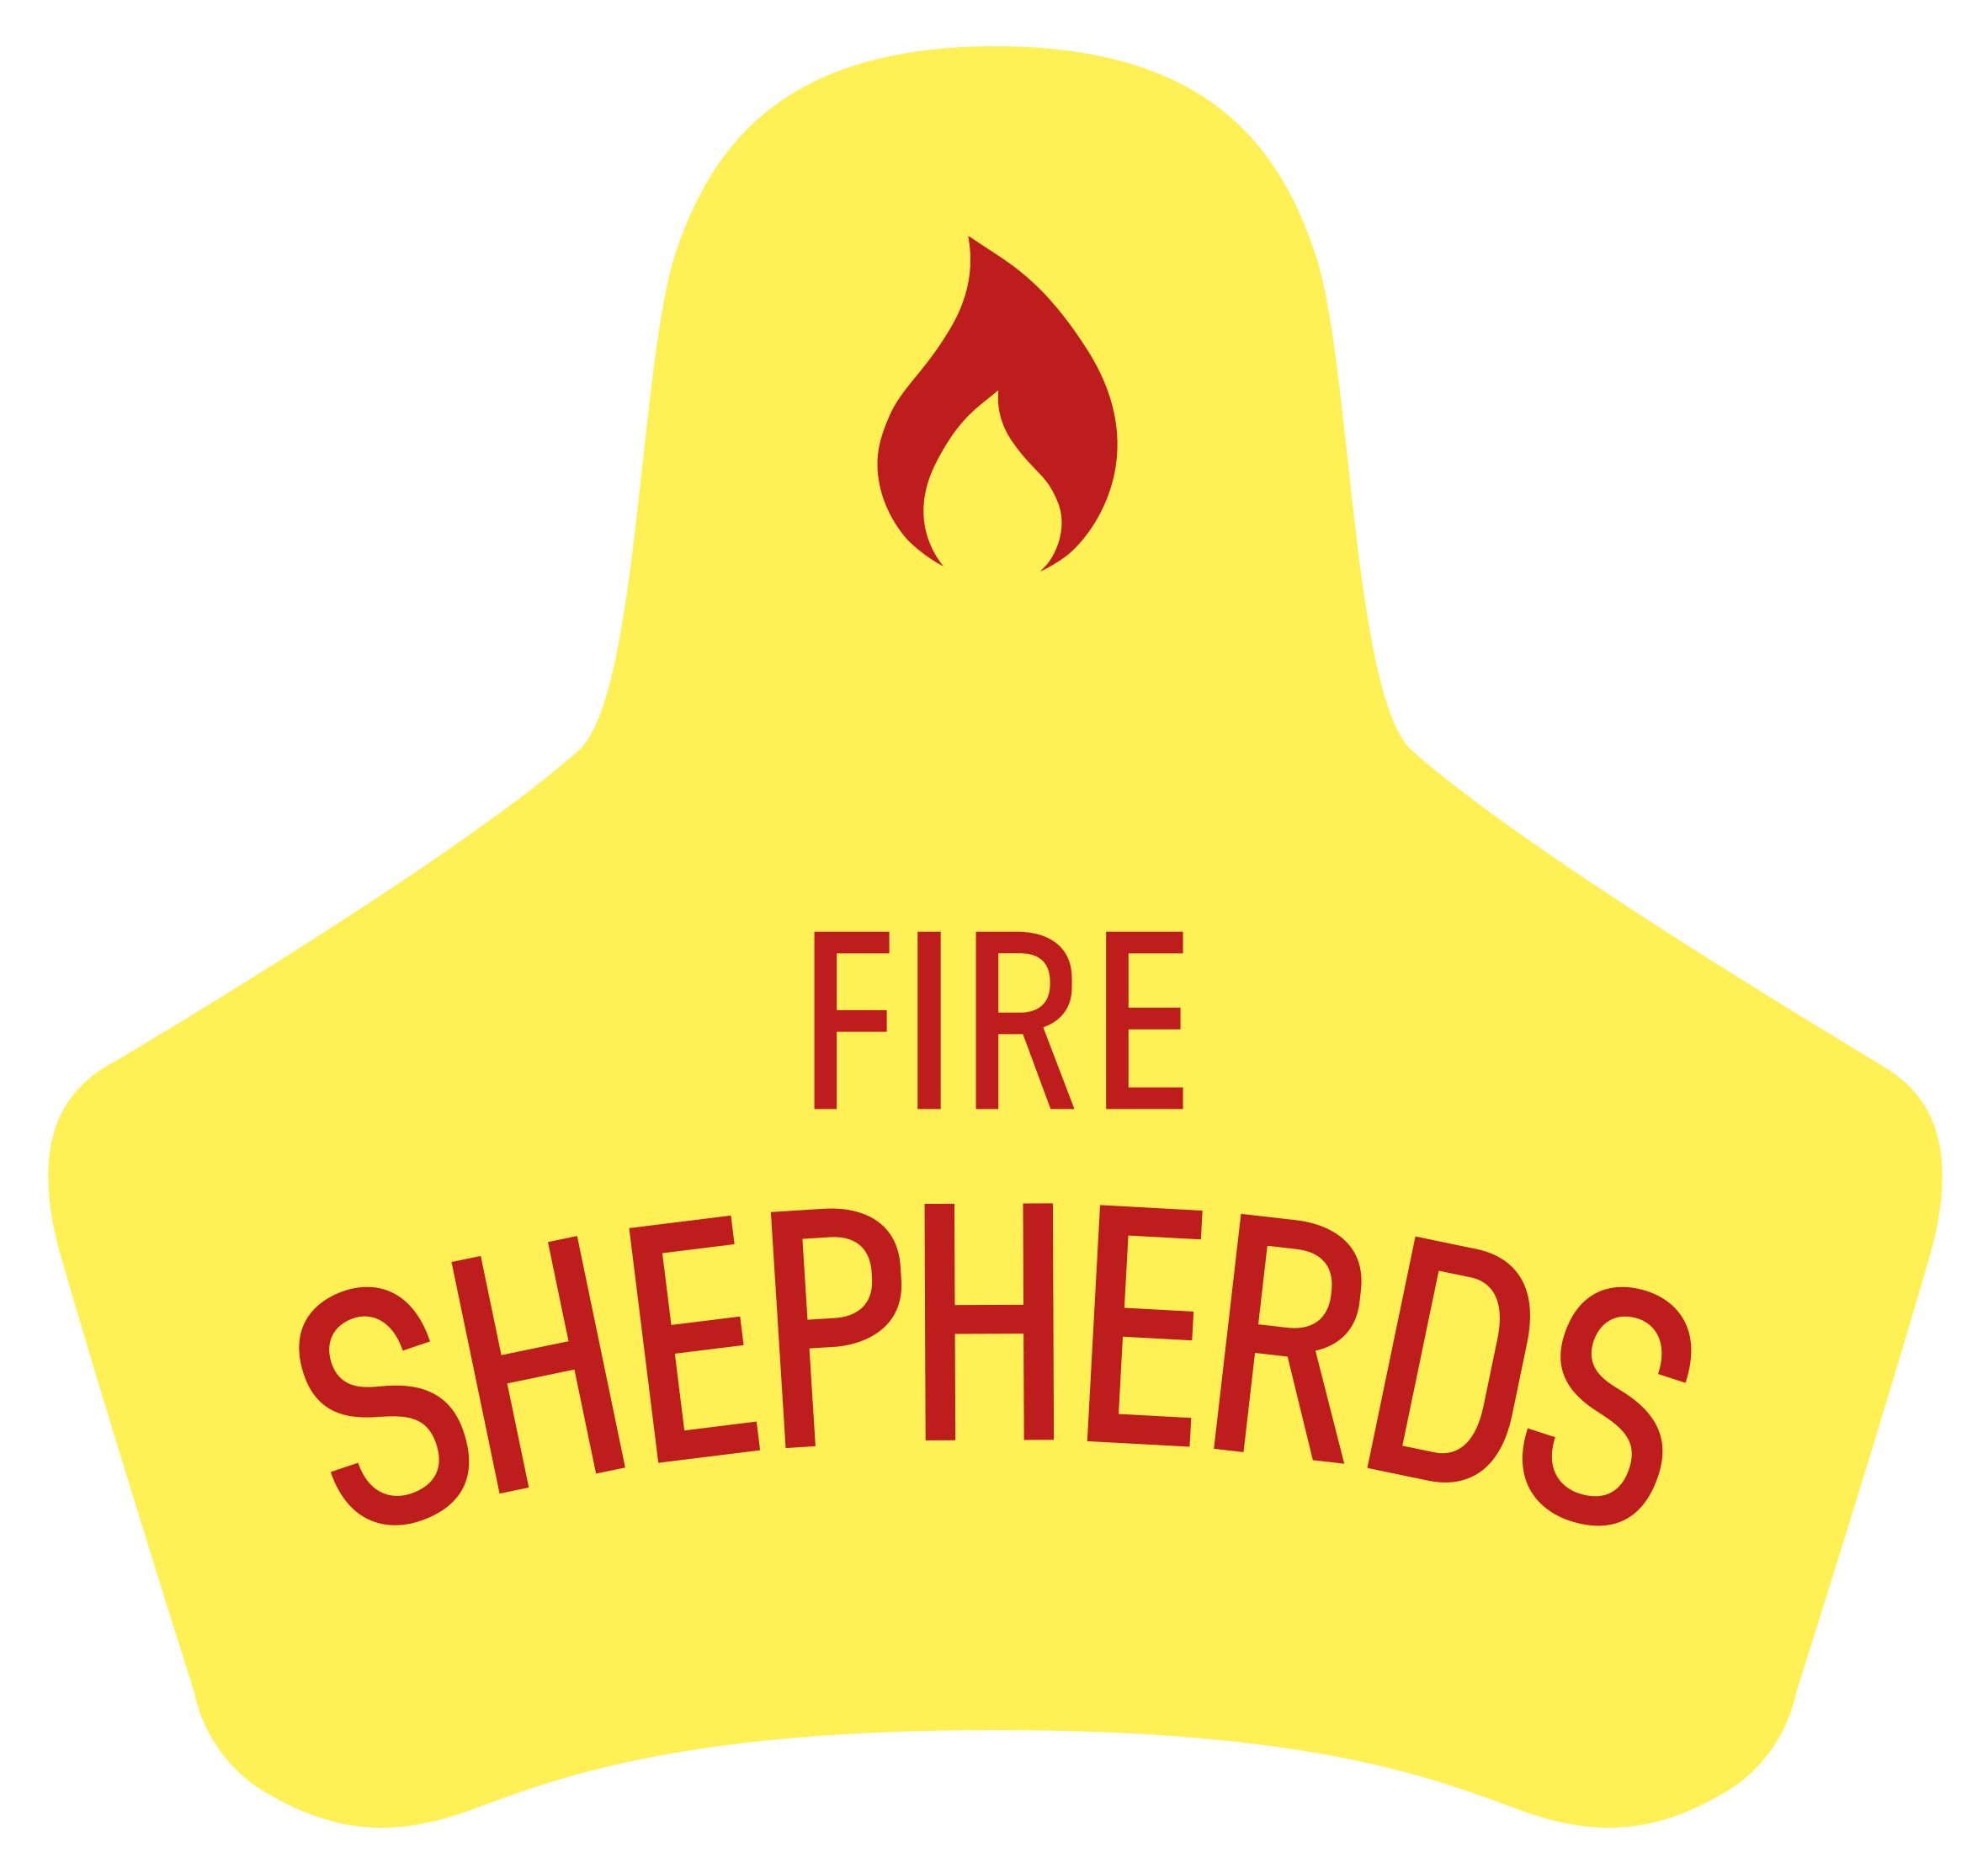 FireShepherds